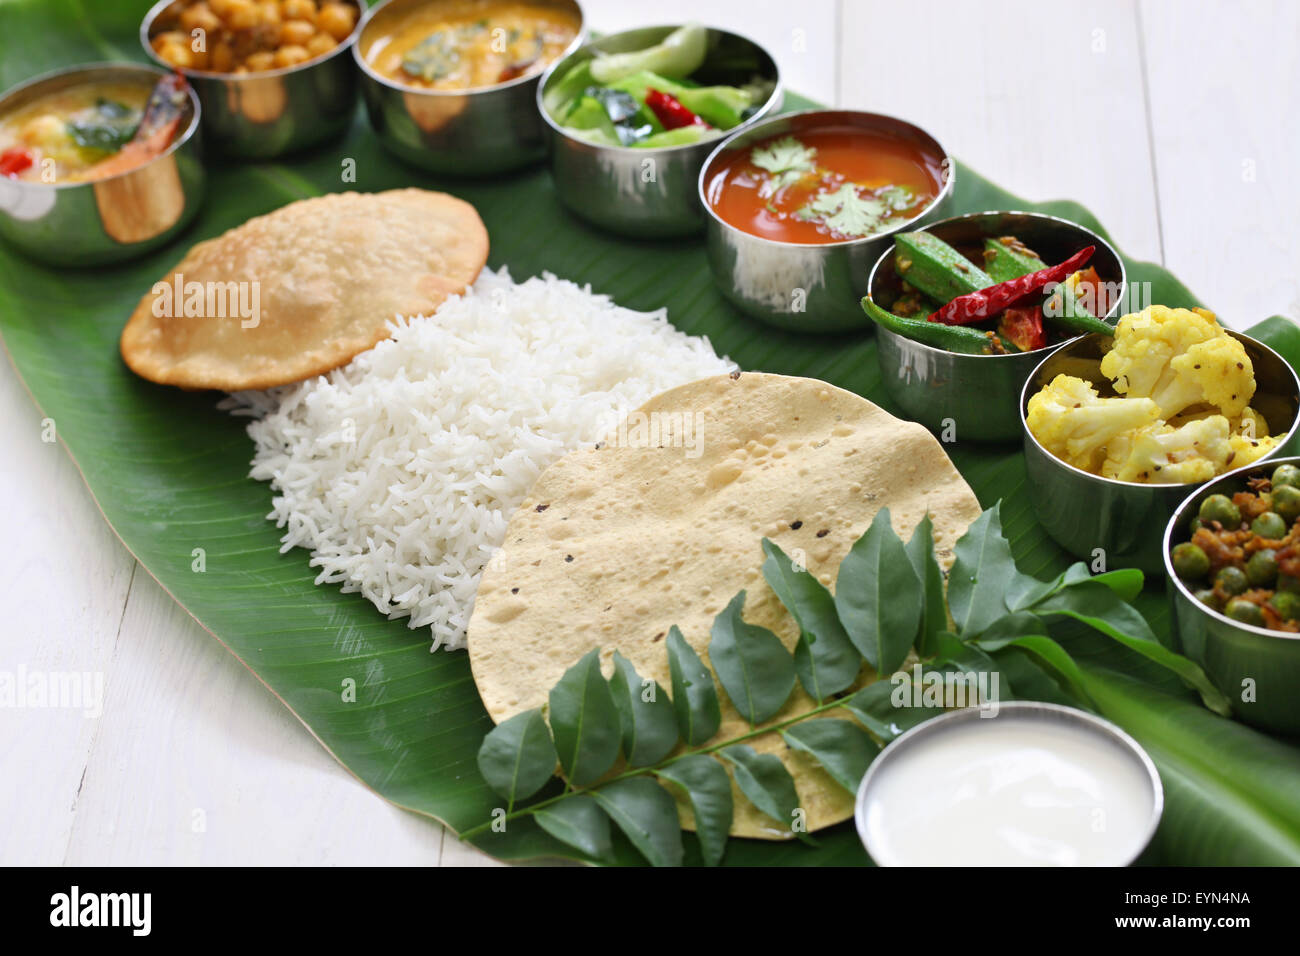 Meals Served On Banana Leaf Traditional South Indian Cuisine Stock